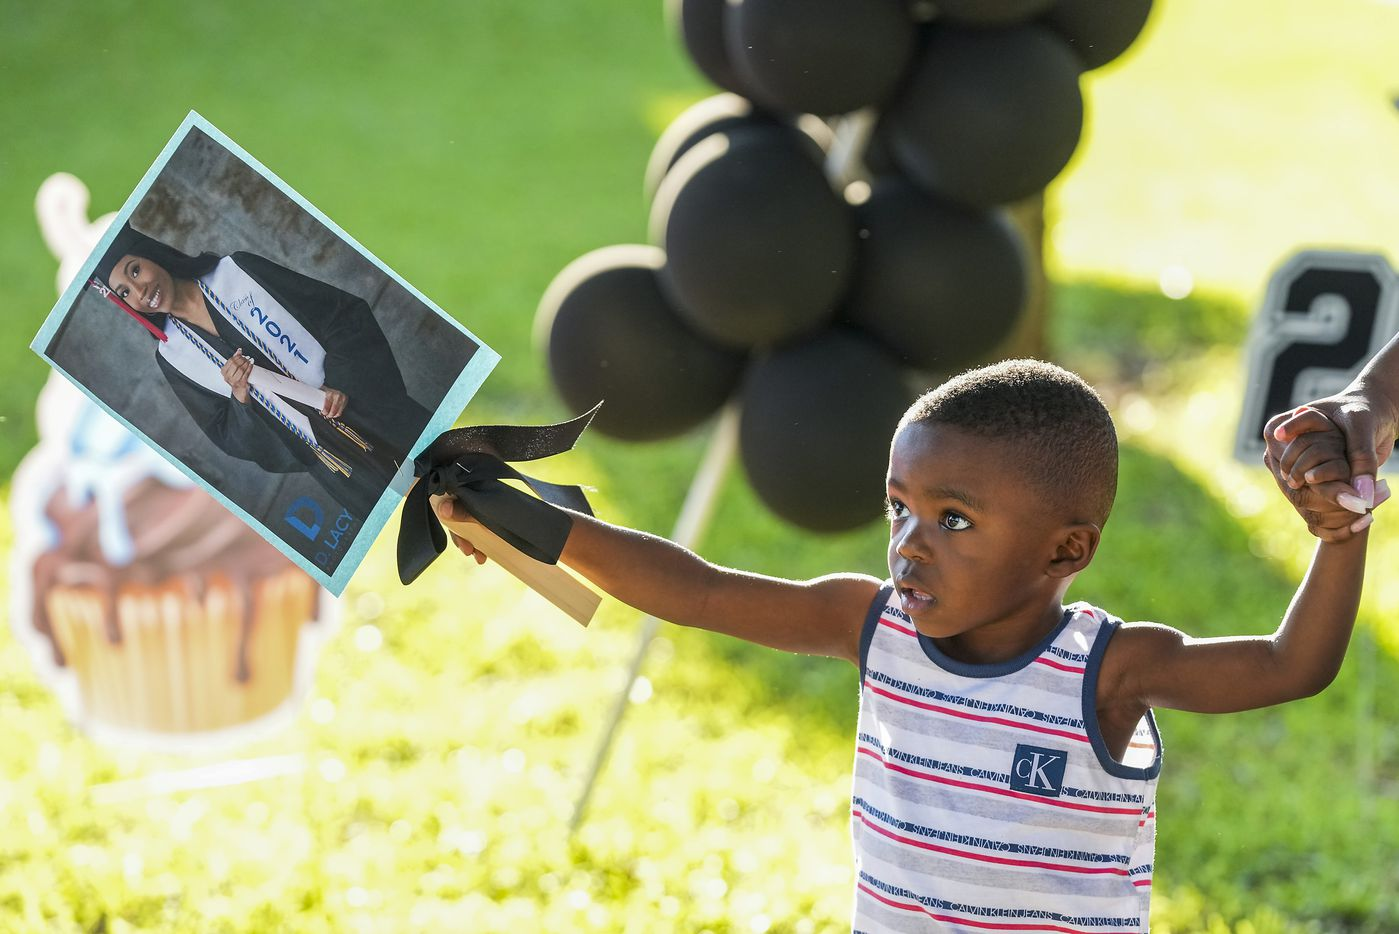 Antwone Anthony, 3, carries a senior photo of his cousin Eryn Fayson as well wishers arrive to celebrate Eryn's graduation from Booker T. Washington HSPVA on Saturday, June 19, 2021.